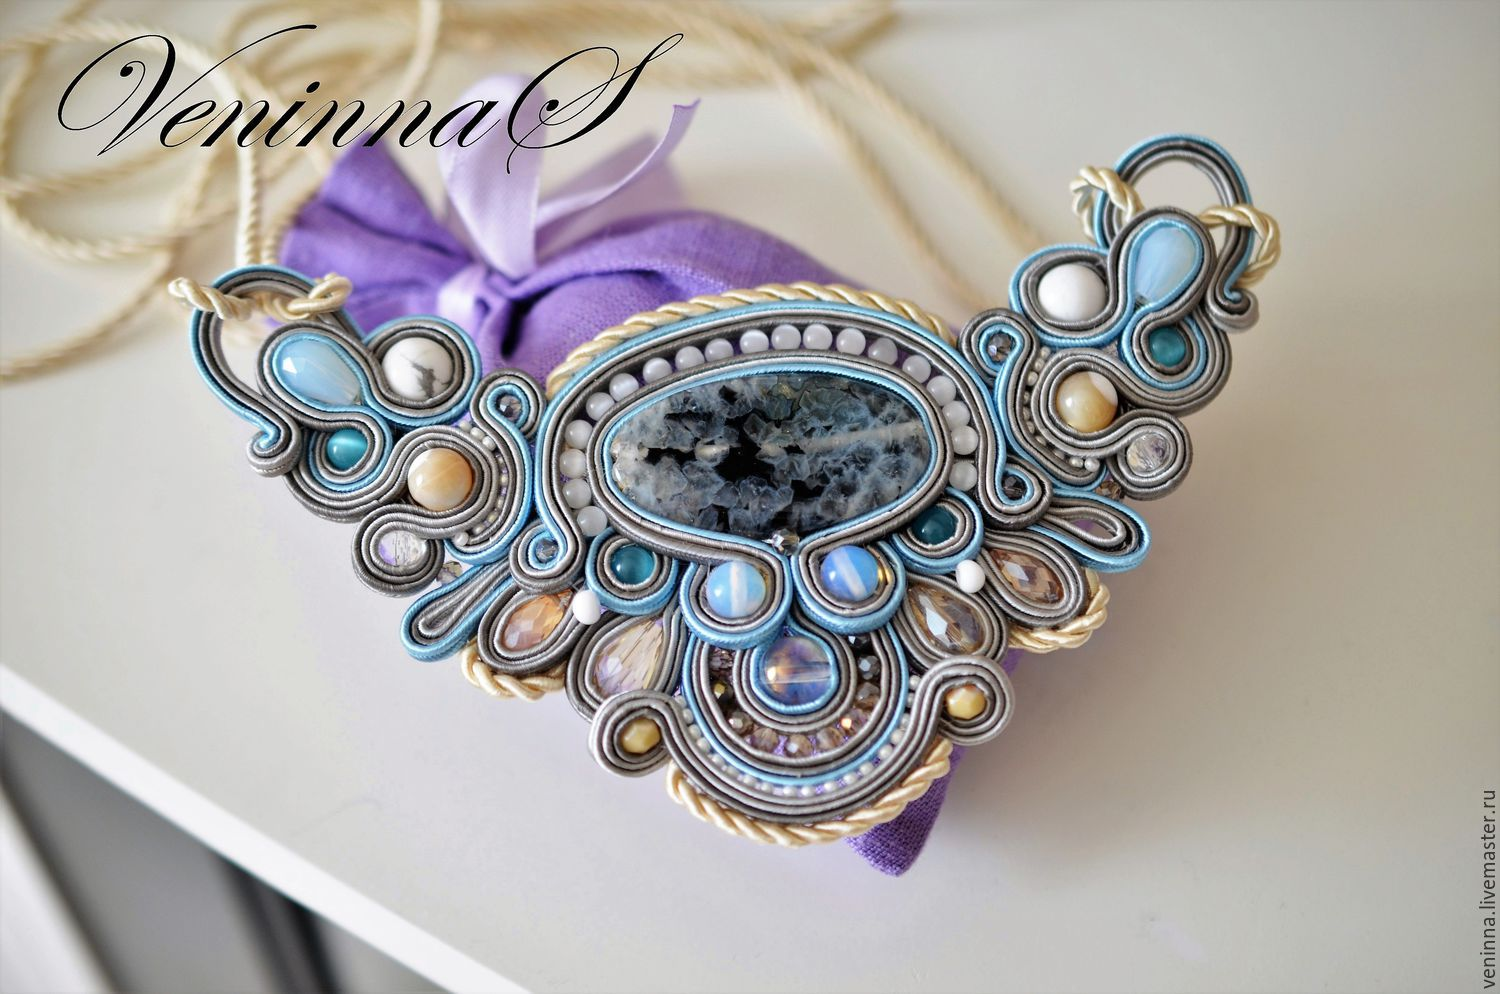 Soutache necklace 'heavenly', Necklace, Moscow,  Фото №1